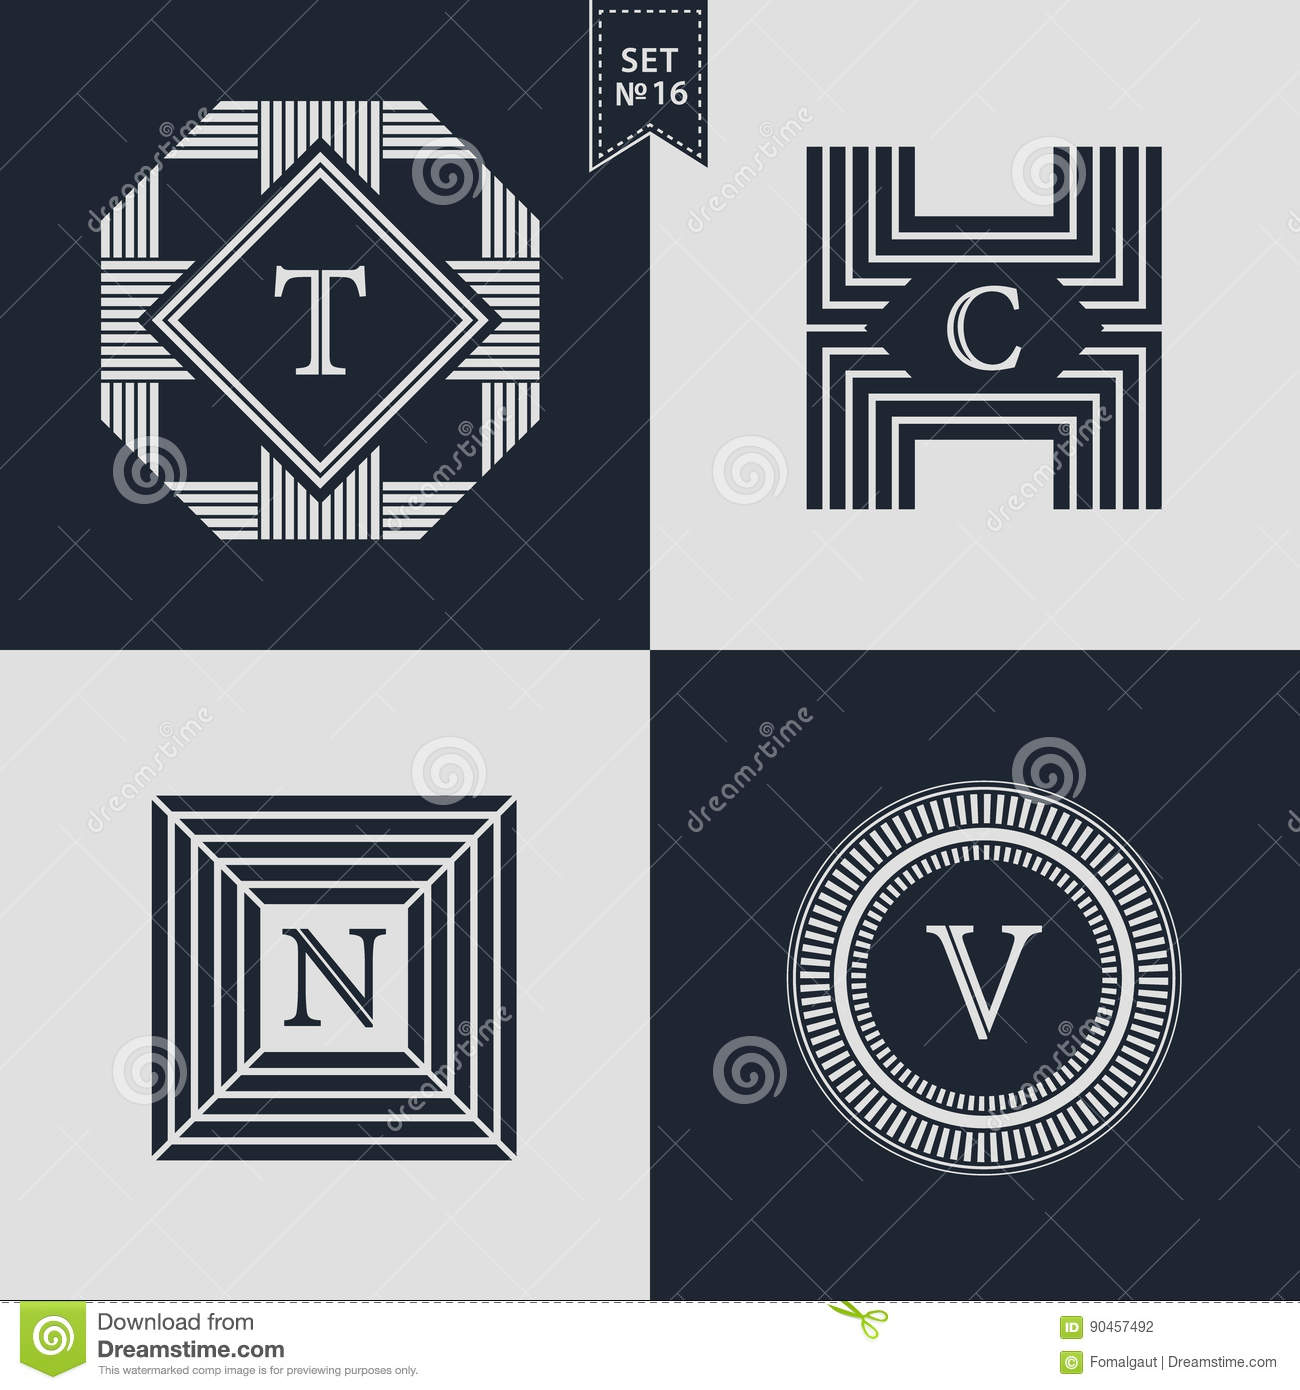 654a464134d13e Logos Design Templates Set. Logotypes elements collection, Icons Symbols,  Retro Labels, Badges, Silhouettes. Abstract logo, Letter T, C, N, V emblems.